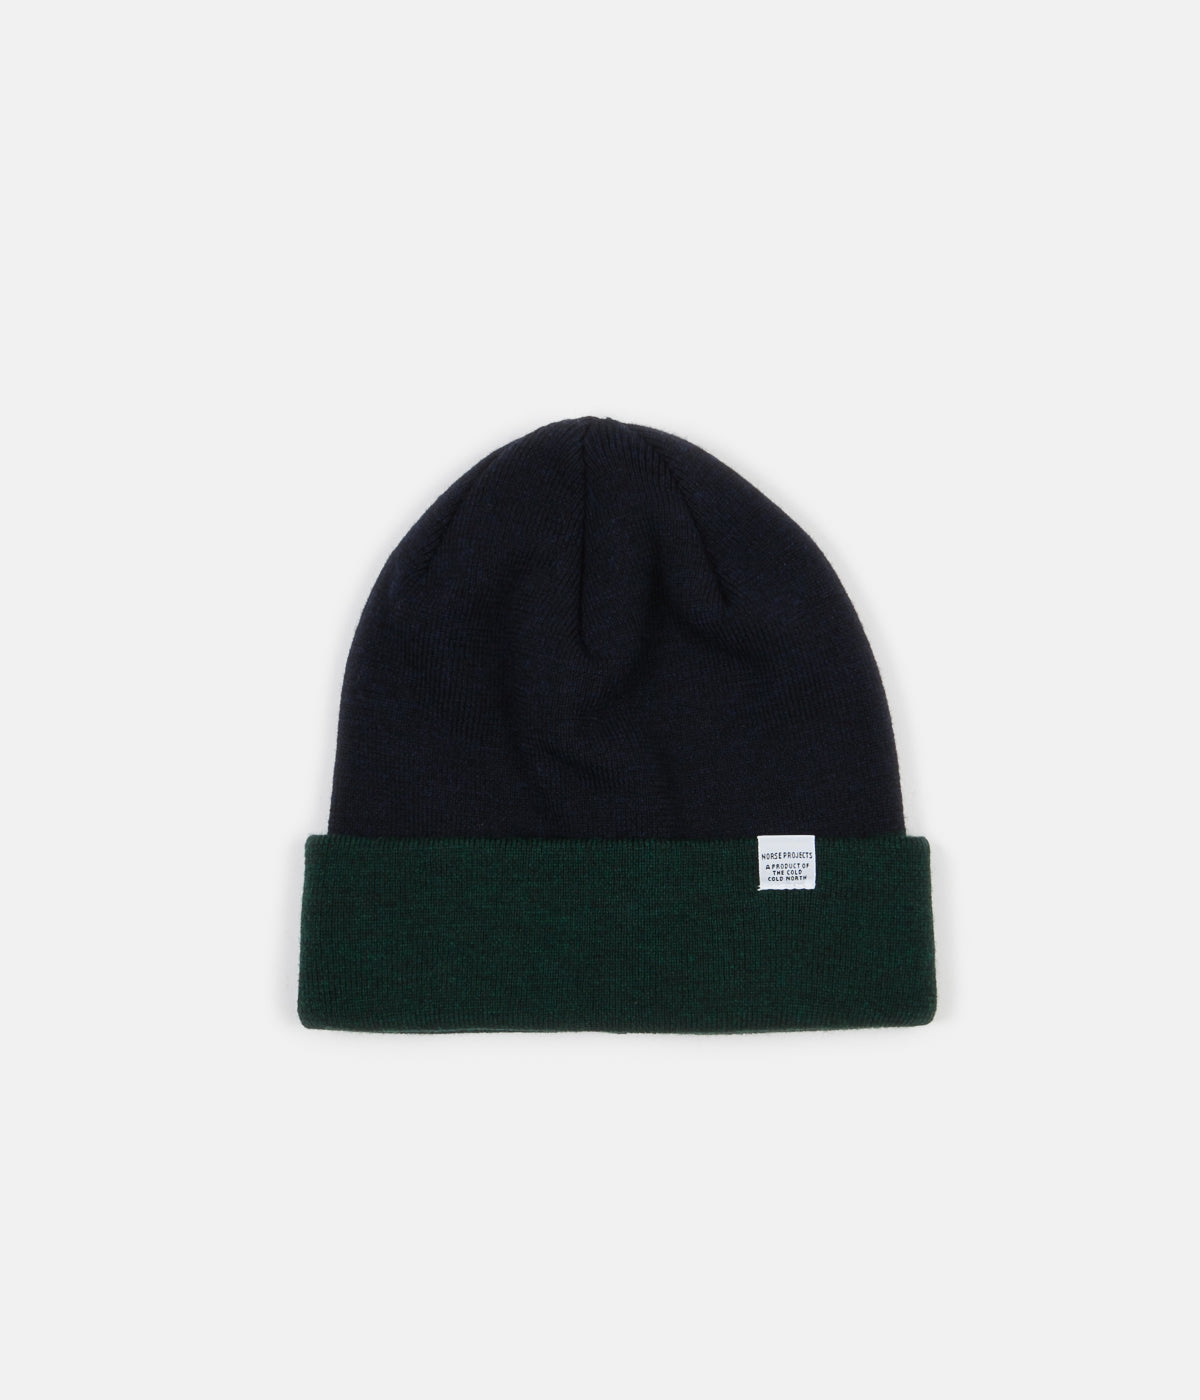 Norse Projects Colour Block Beanie - Spinnaker Green  62c9ed7ee45